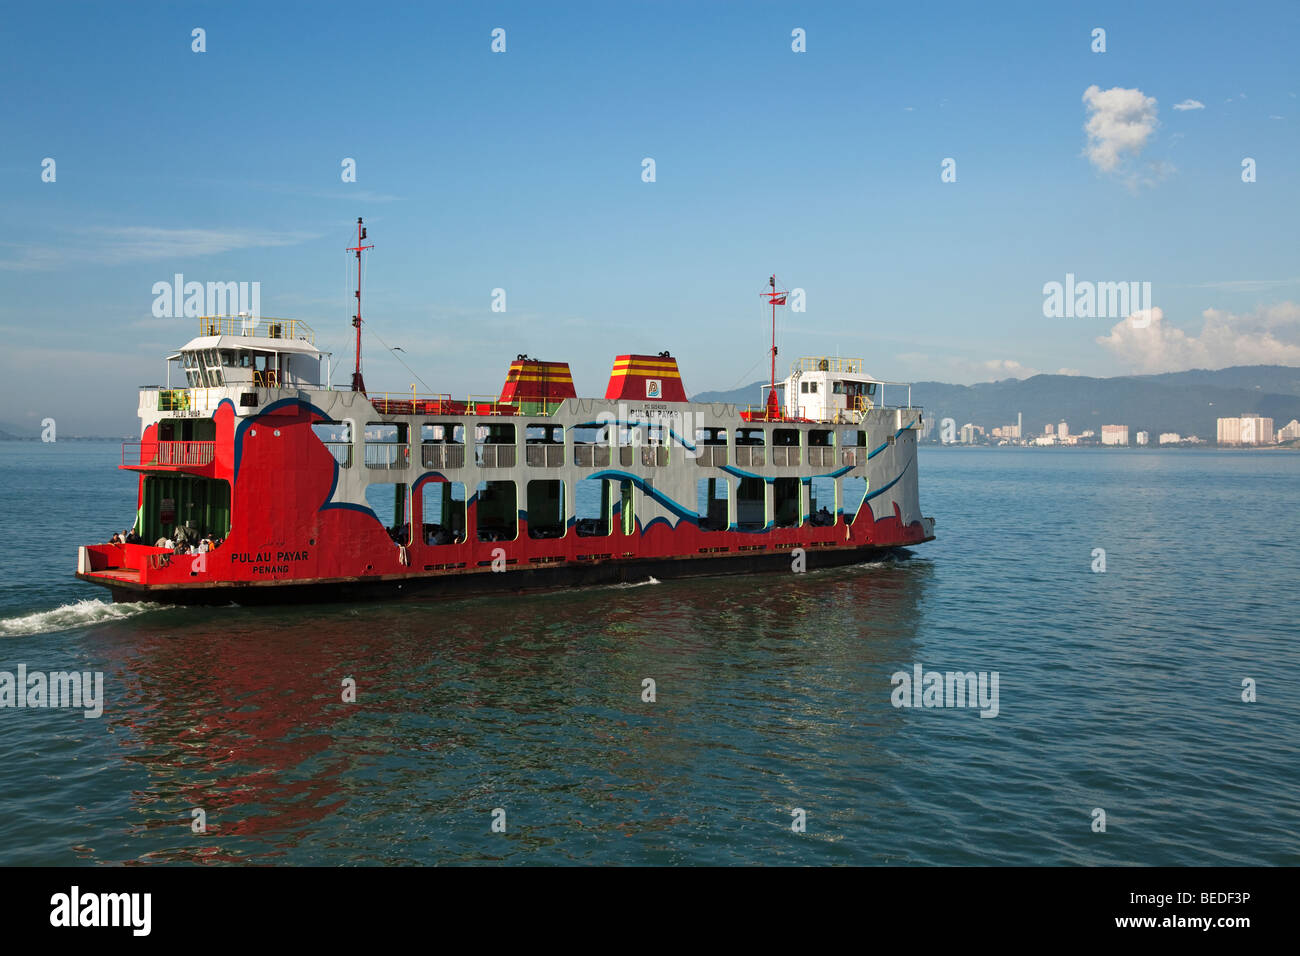 Penang Ferry Service - Stock Image